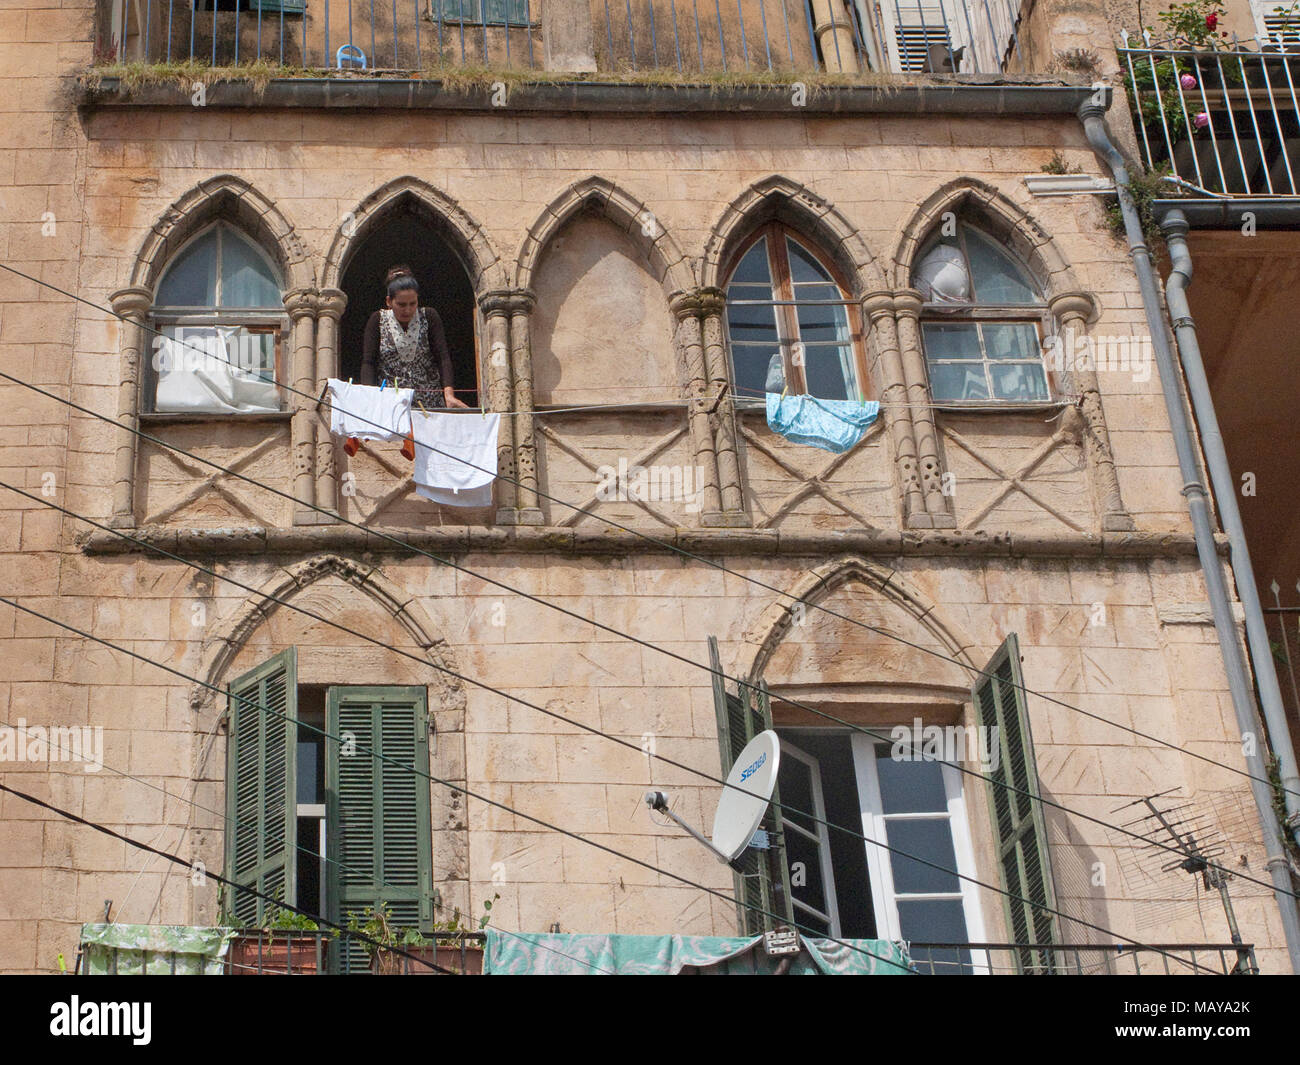 House facade with out hanging laundry, old town of Grasse, Alpes-Maritimes, South France, France, Europe Stock Photo